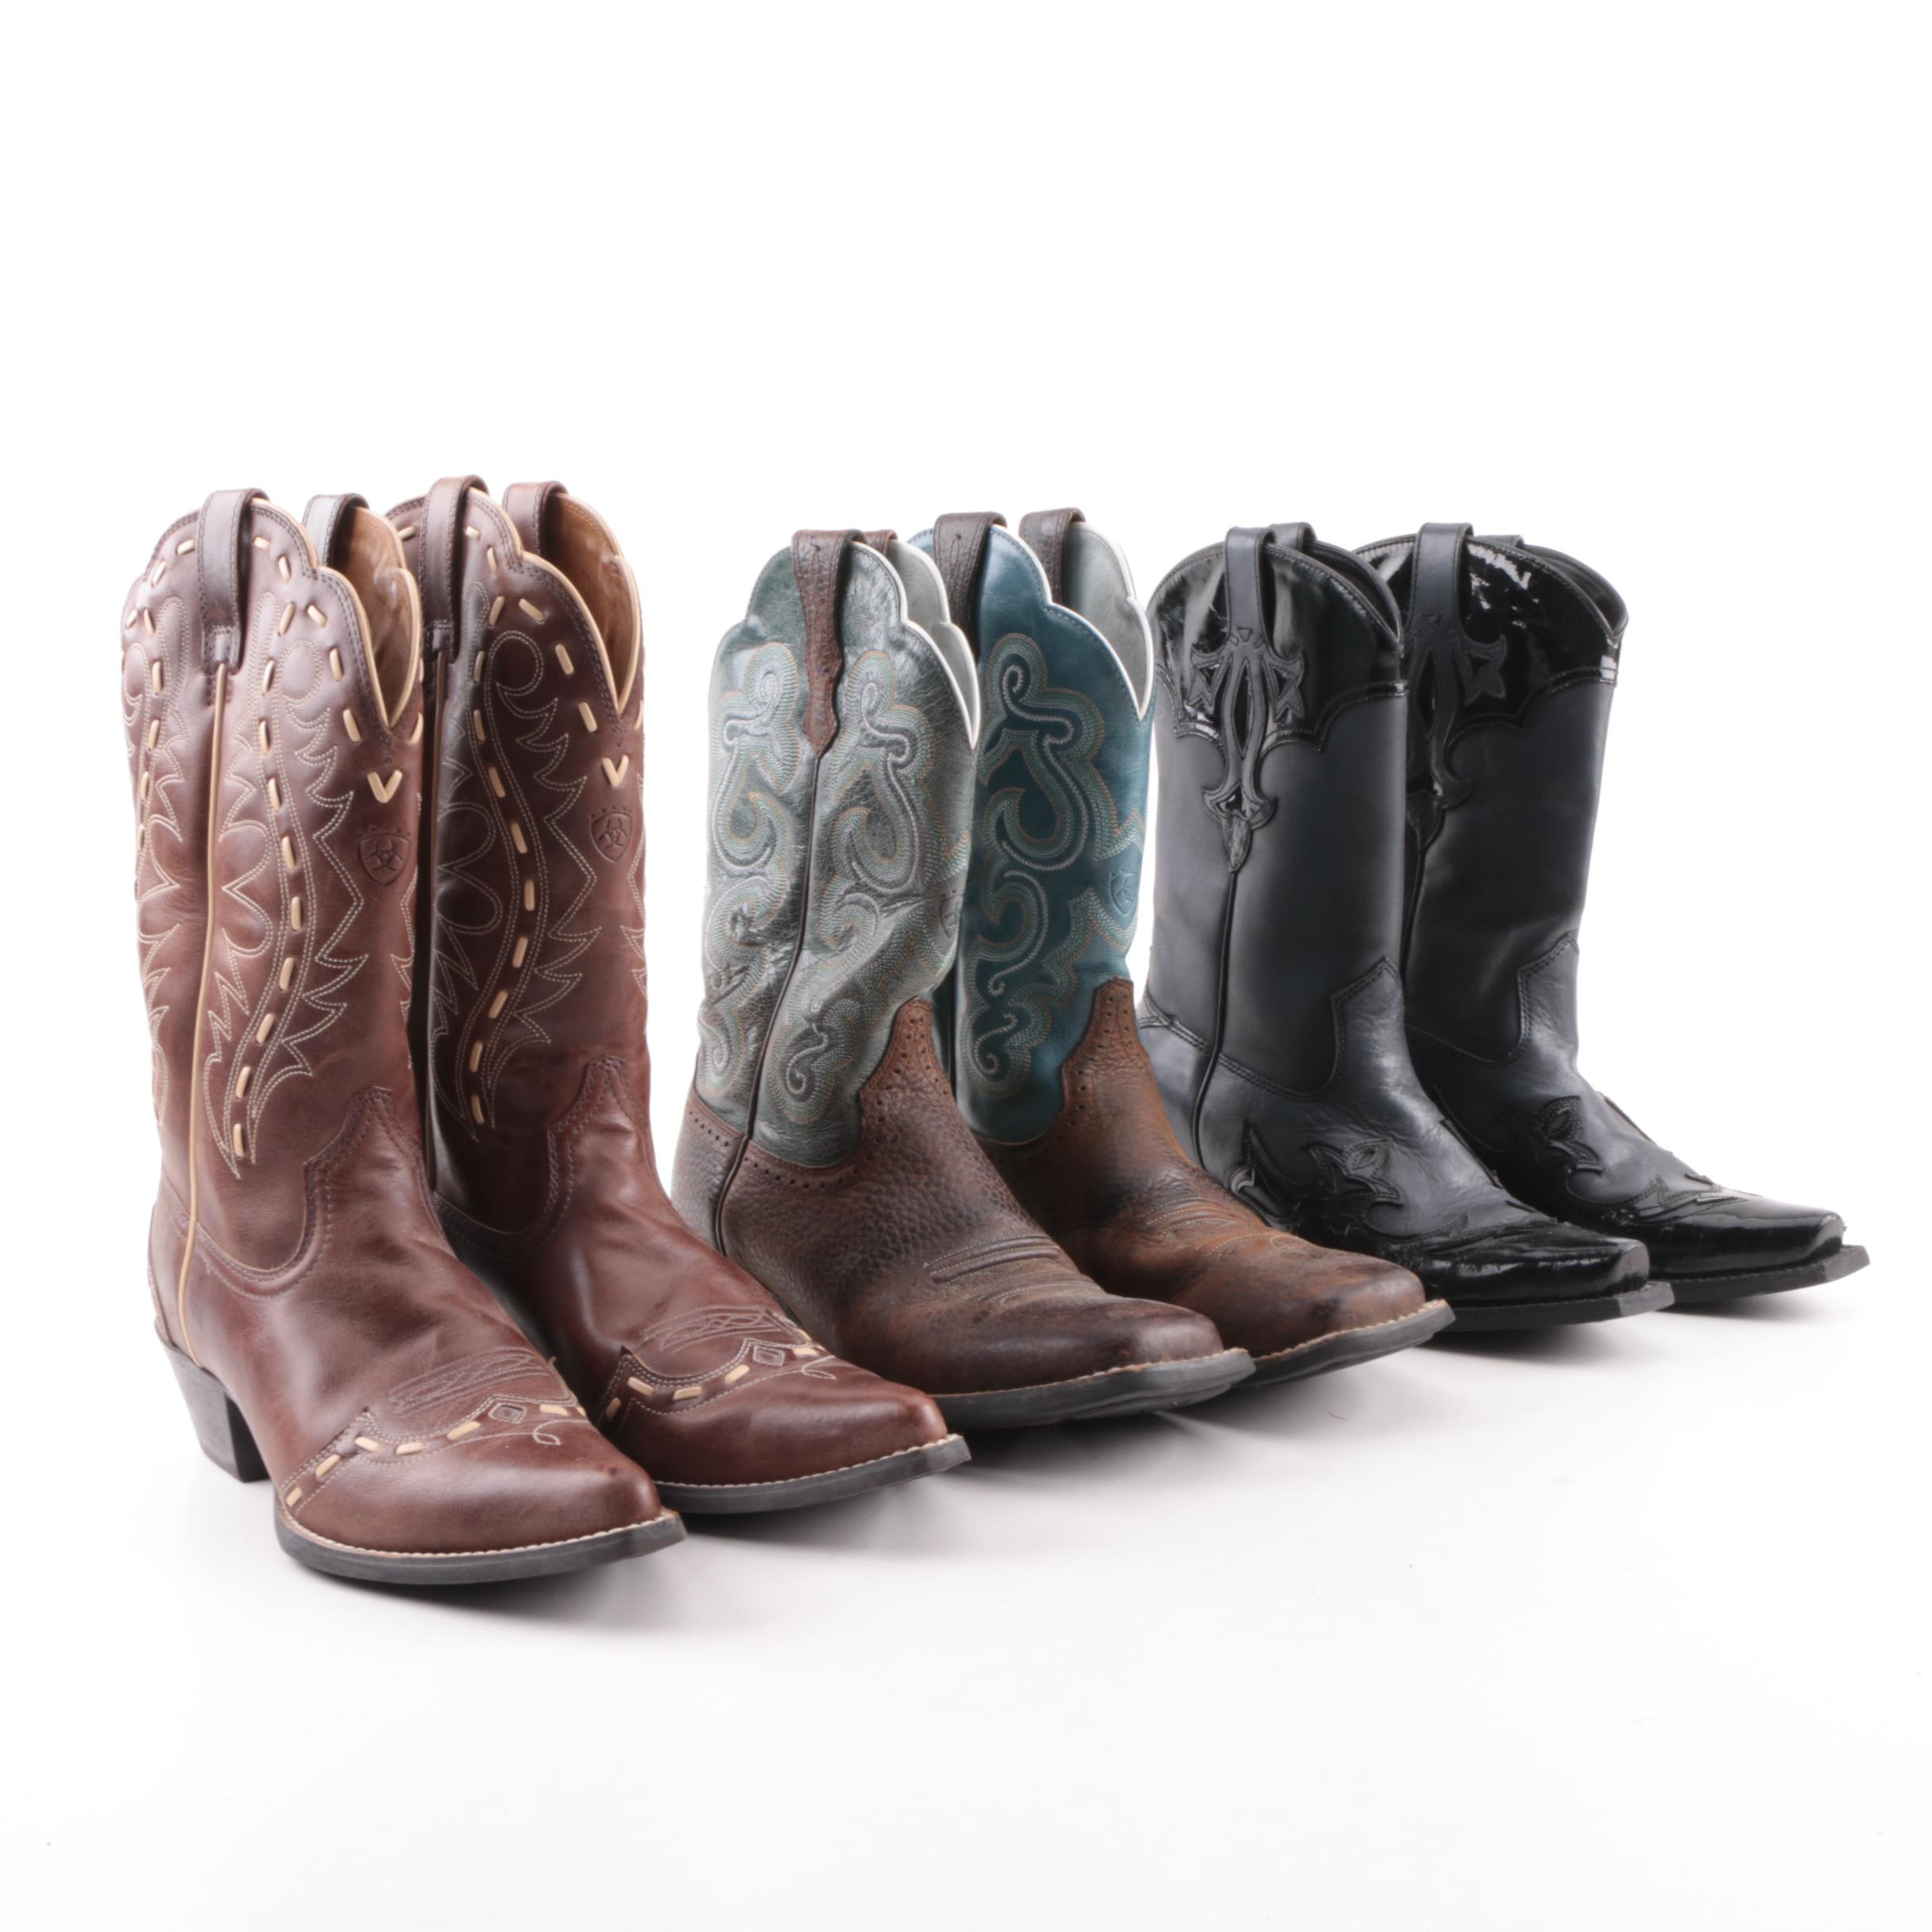 Women's Ariat Leather Western Boots